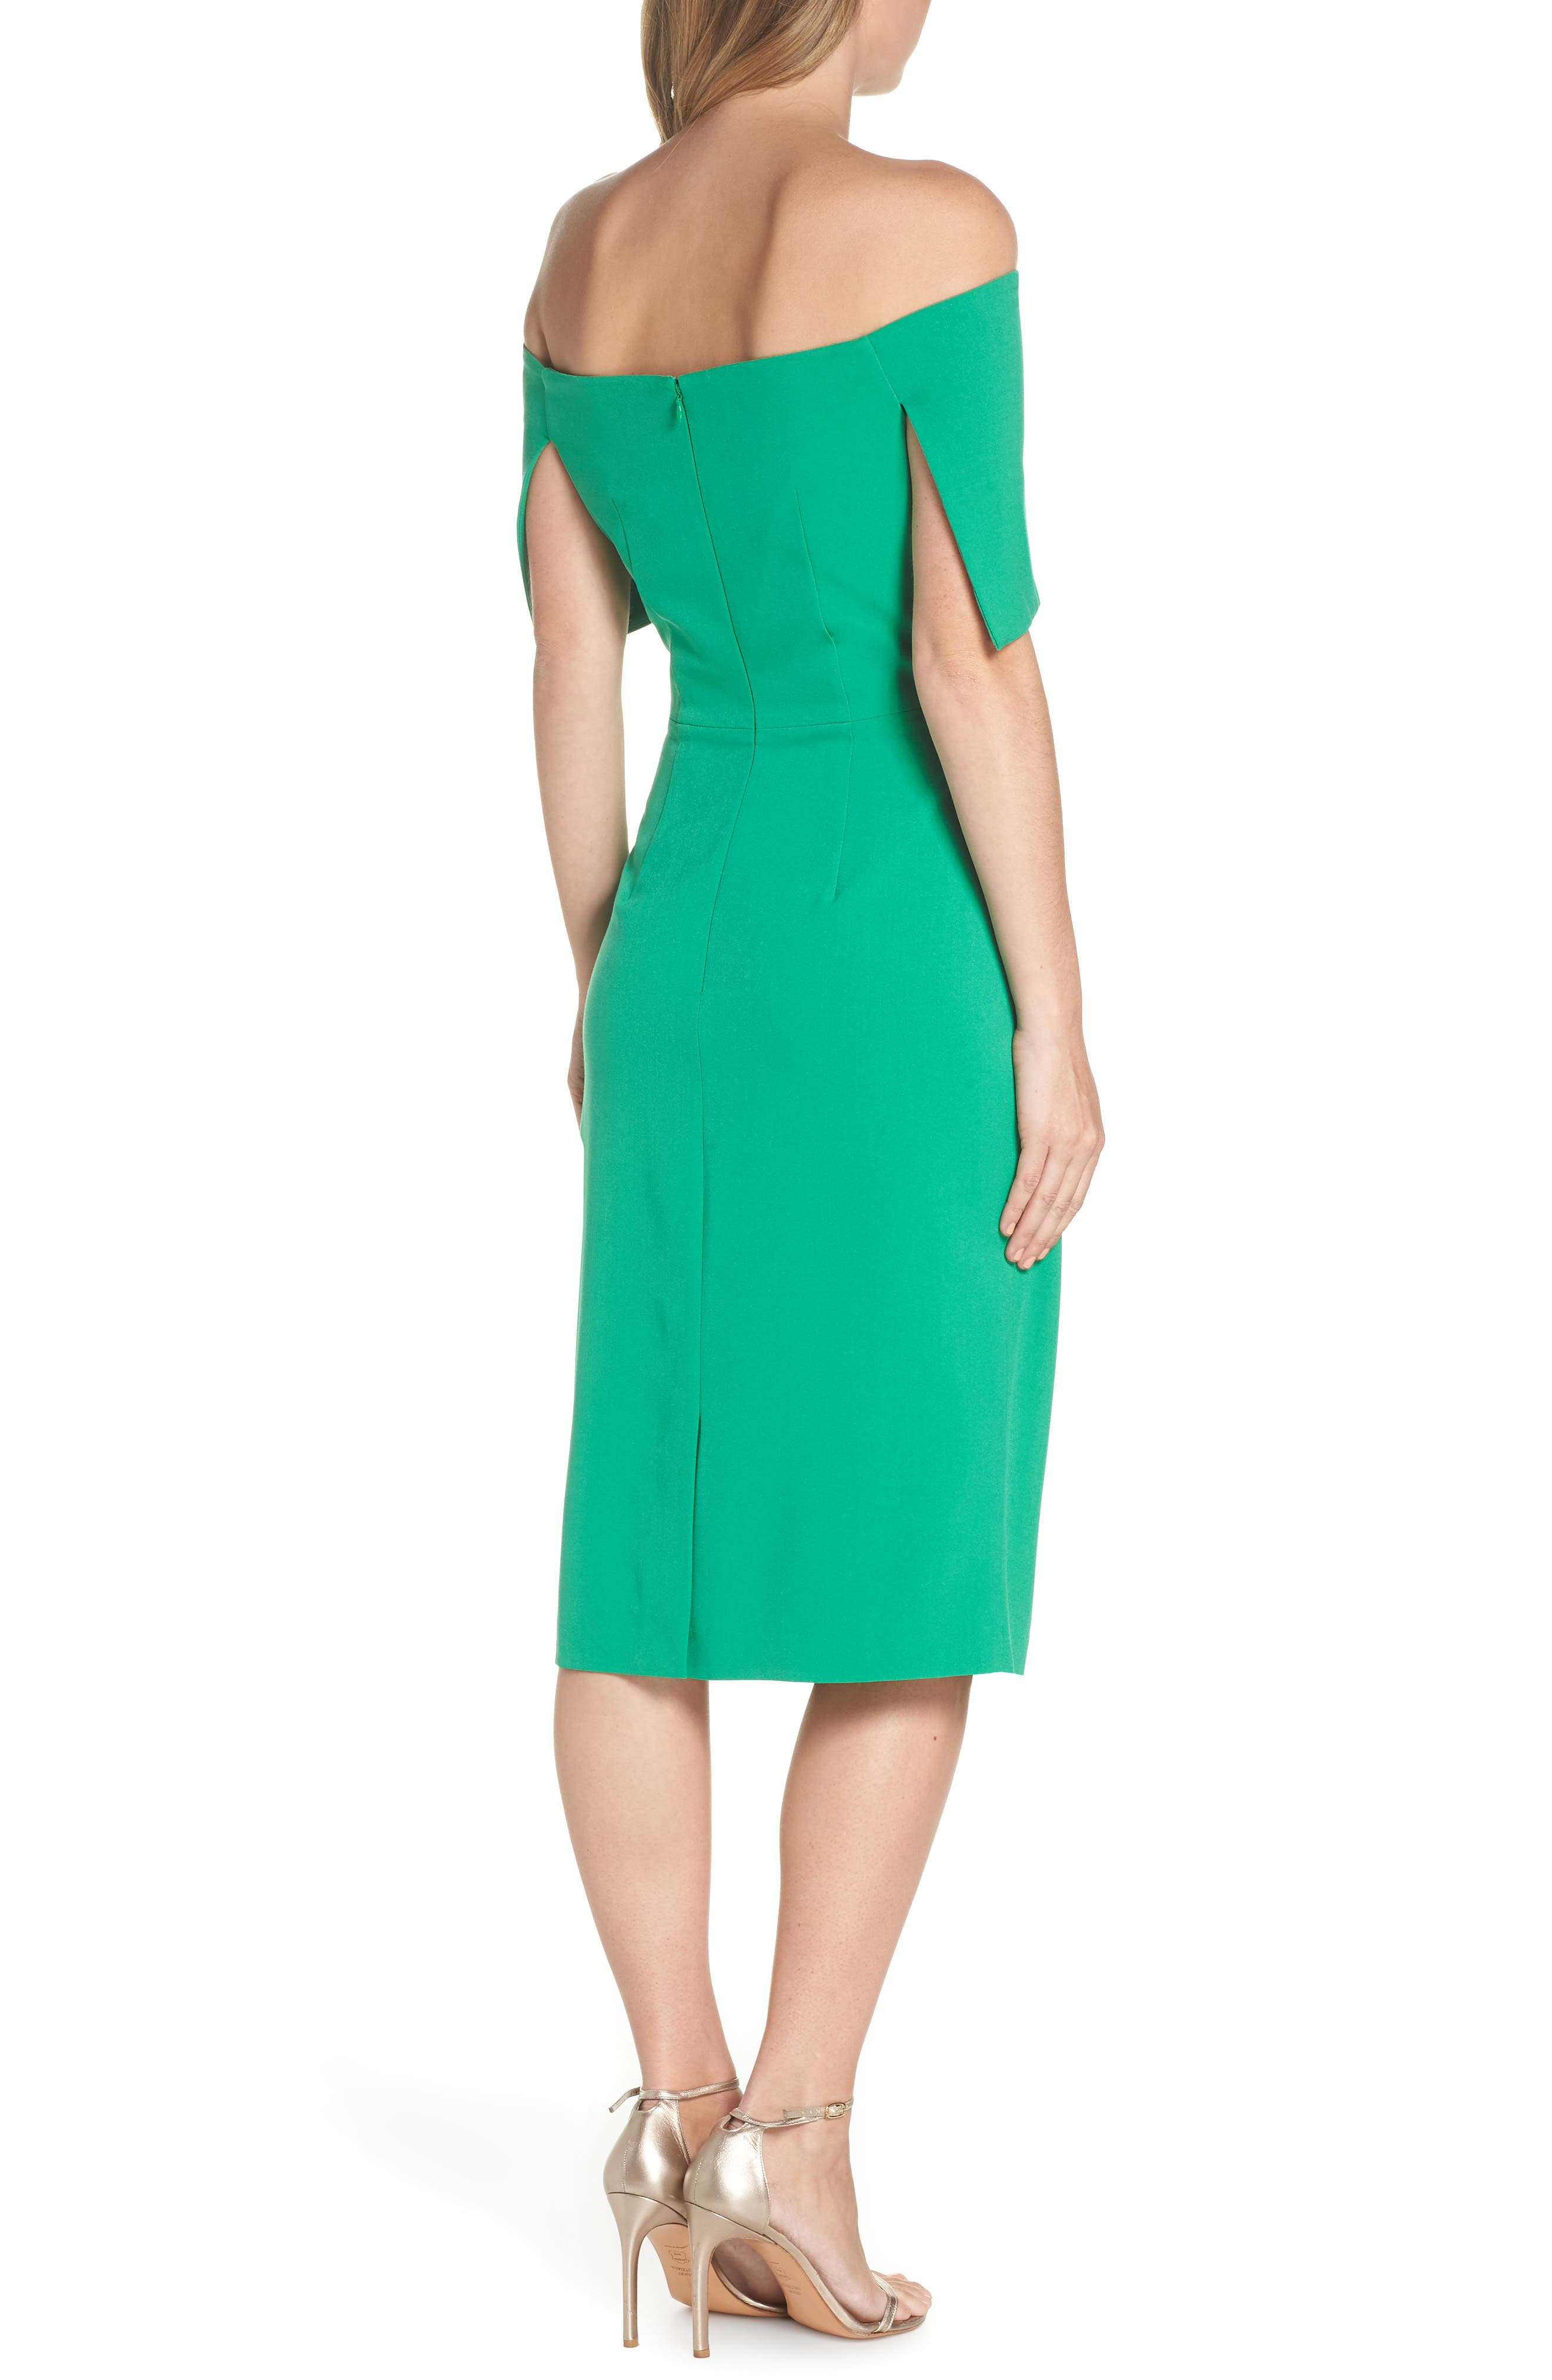 VINCE CAMUTO, Popover Midi Dress, Alternate thumbnail 2, color, GREEN